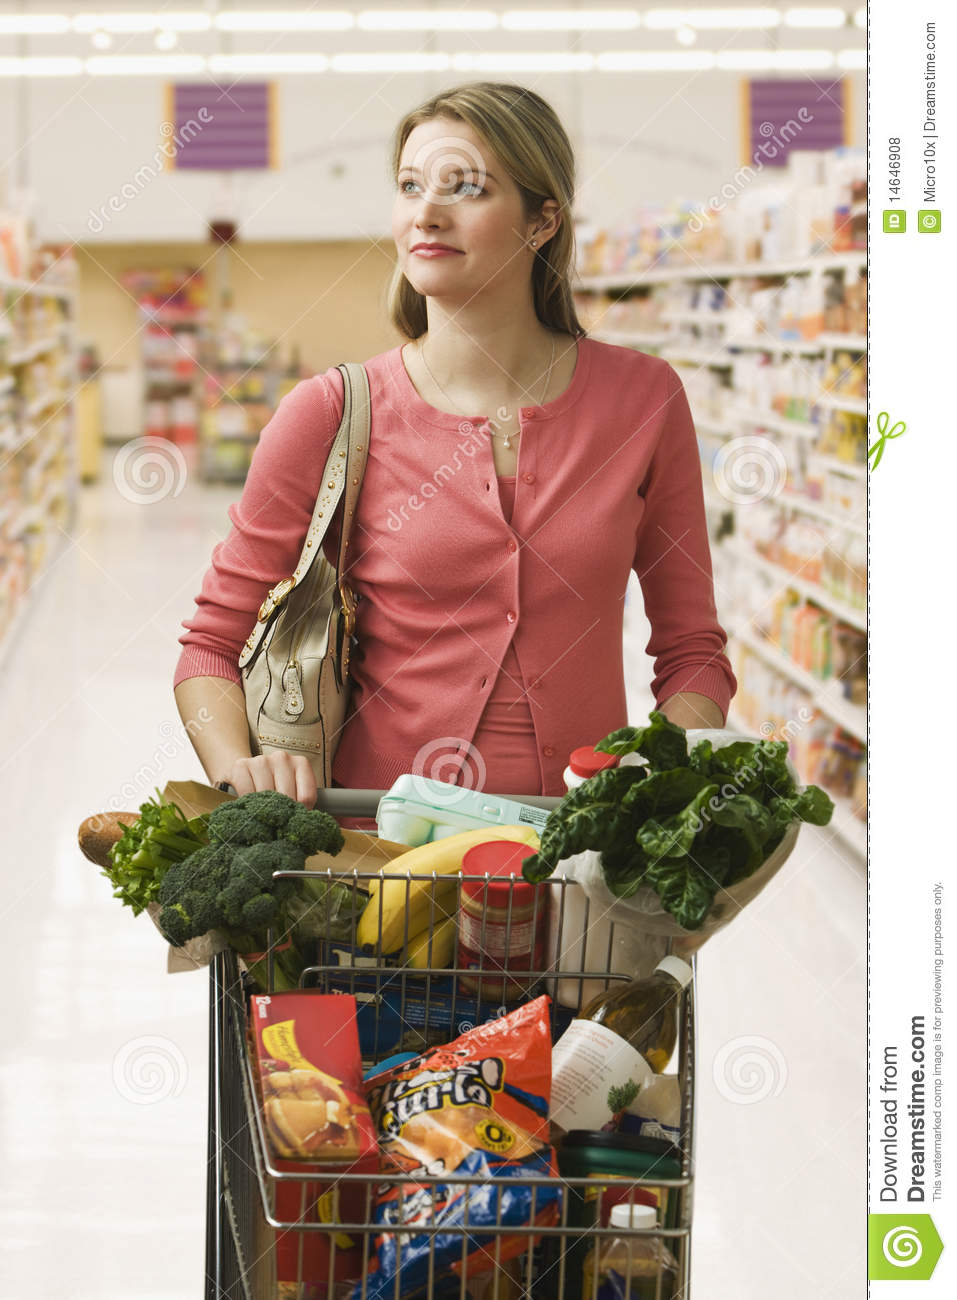 Buying A Full Face Snorkel Mask Reviews Of Full Face: Woman Buying Groceries Royalty Free Stock Photos